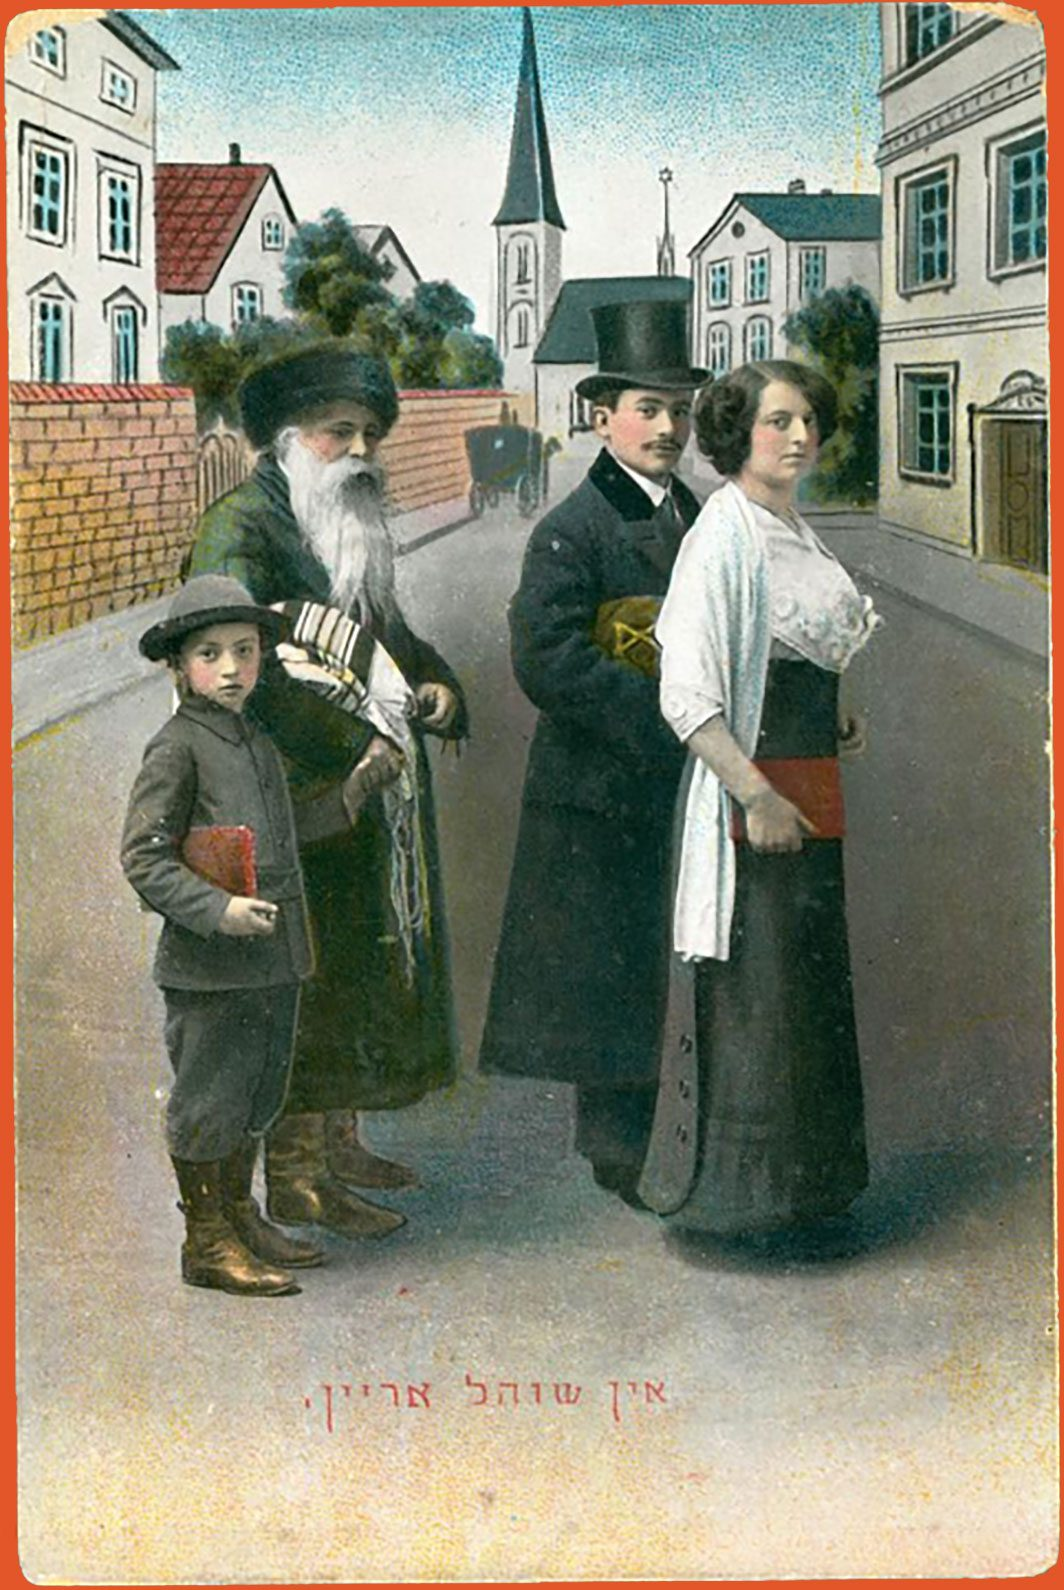 Postcard depicting three generations of a family